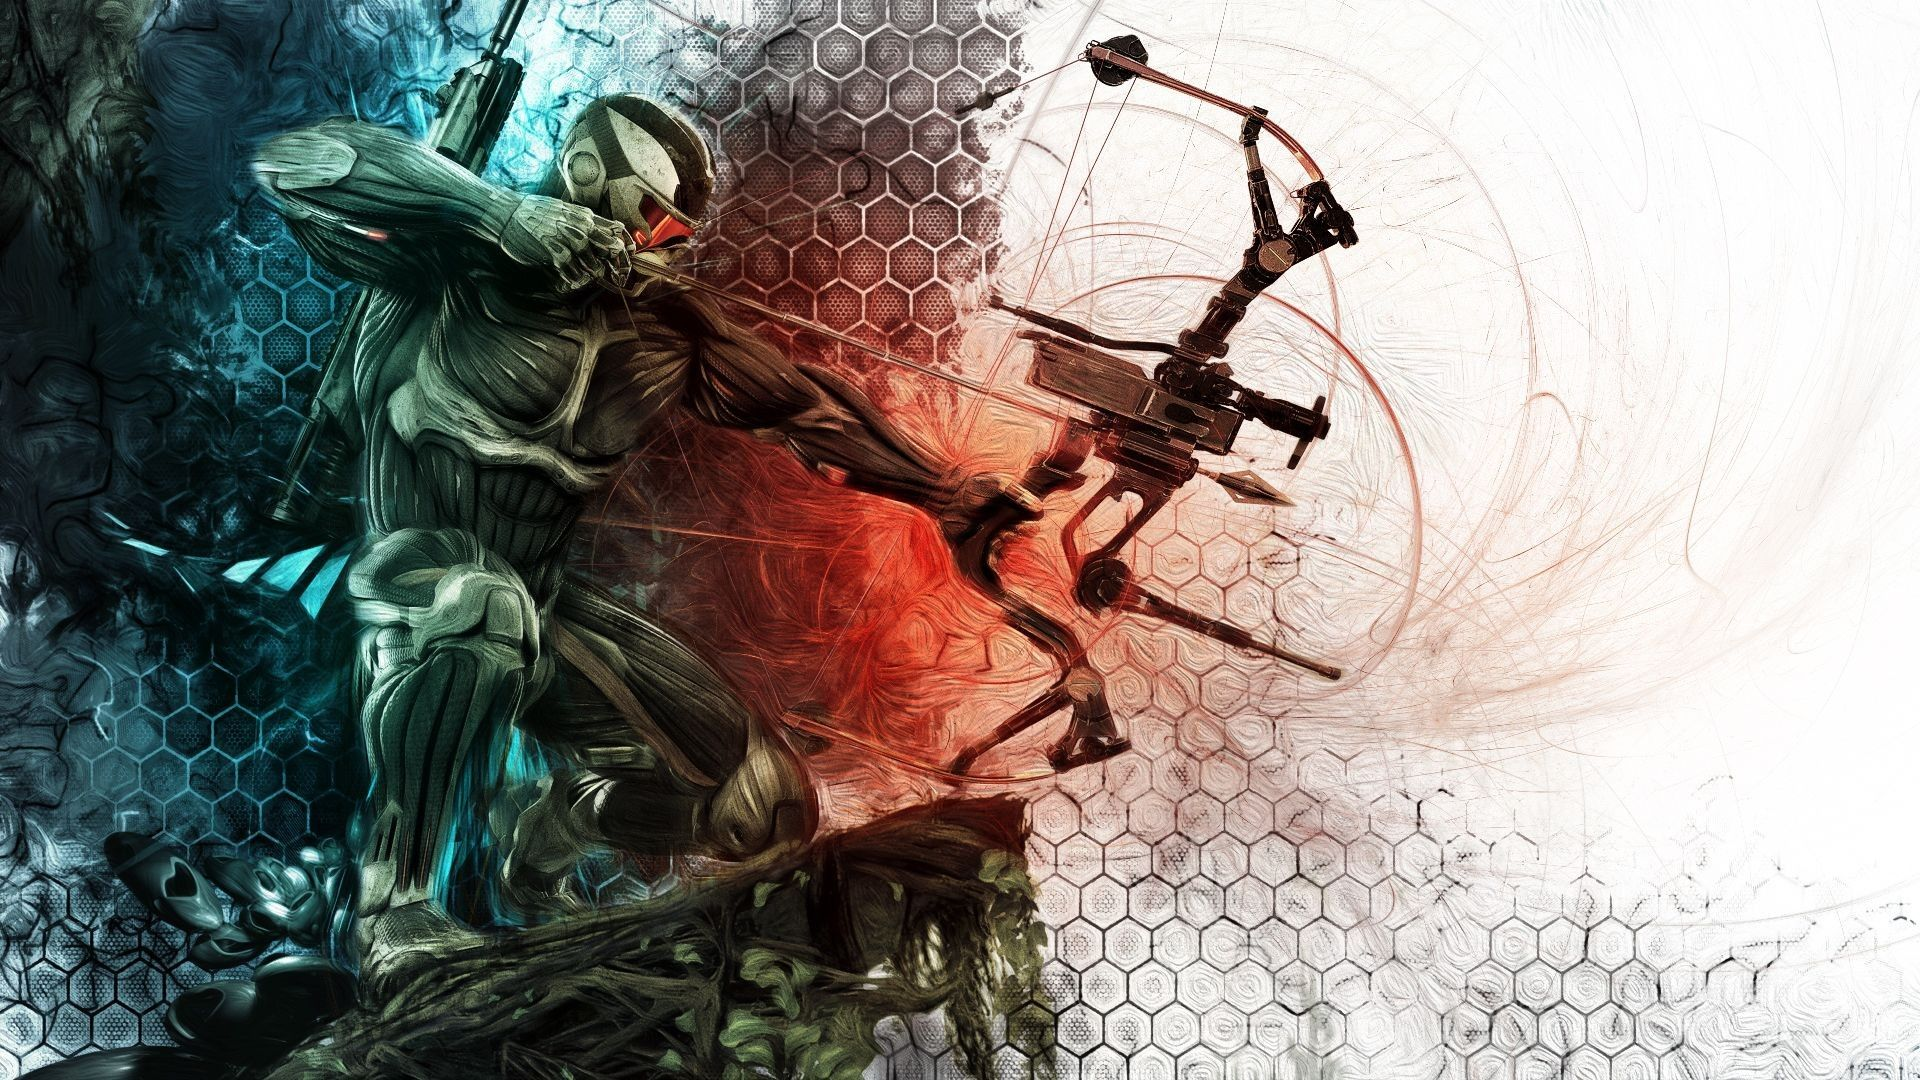 Crysis 3 Wallpaper With Bow